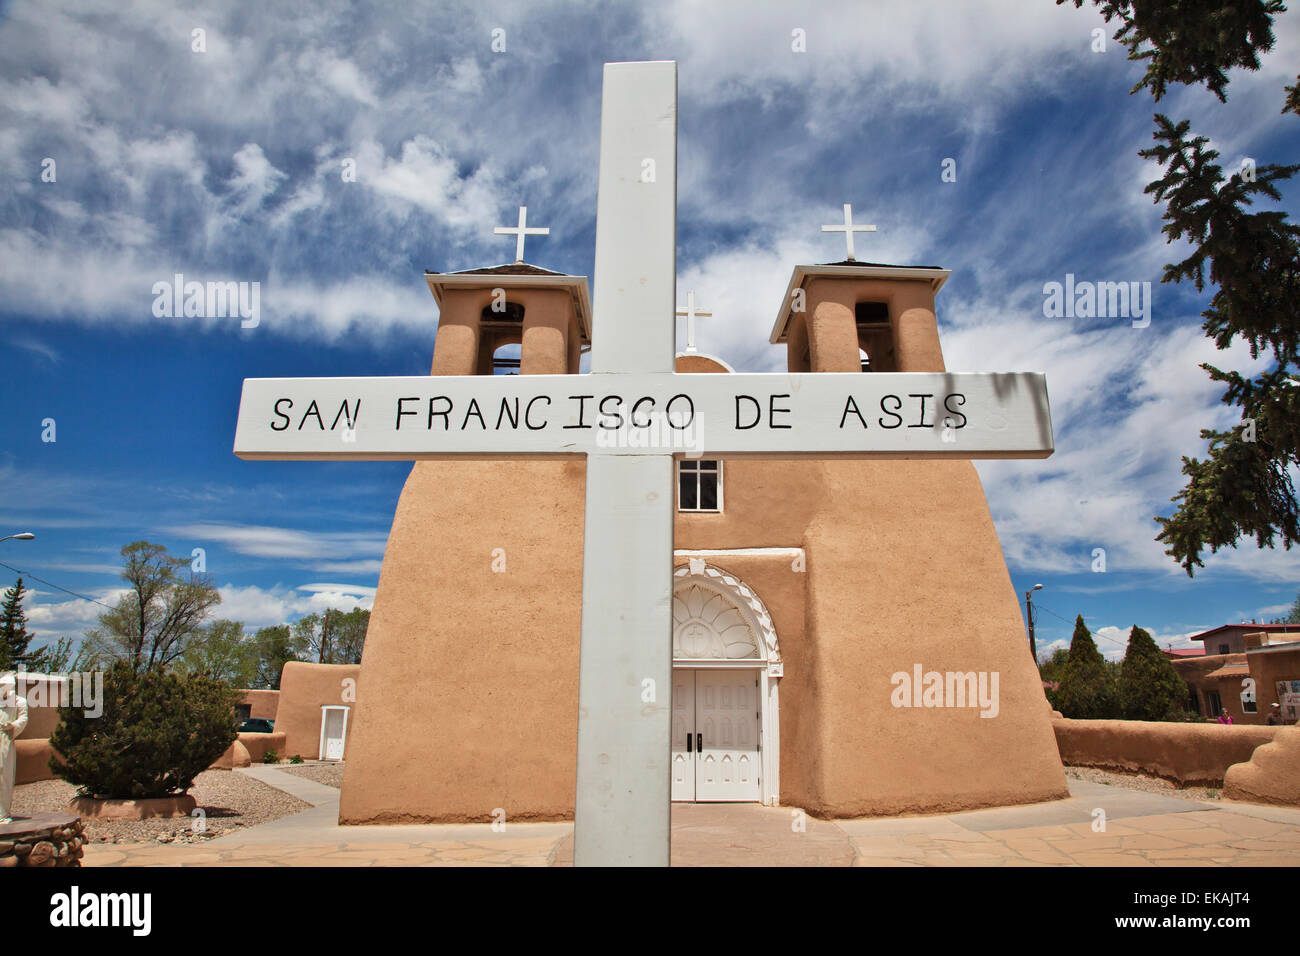 Taos plaza stock photos taos plaza stock images alamy the church at the plaza at rancho de taos near taos new mexico is publicscrutiny Images